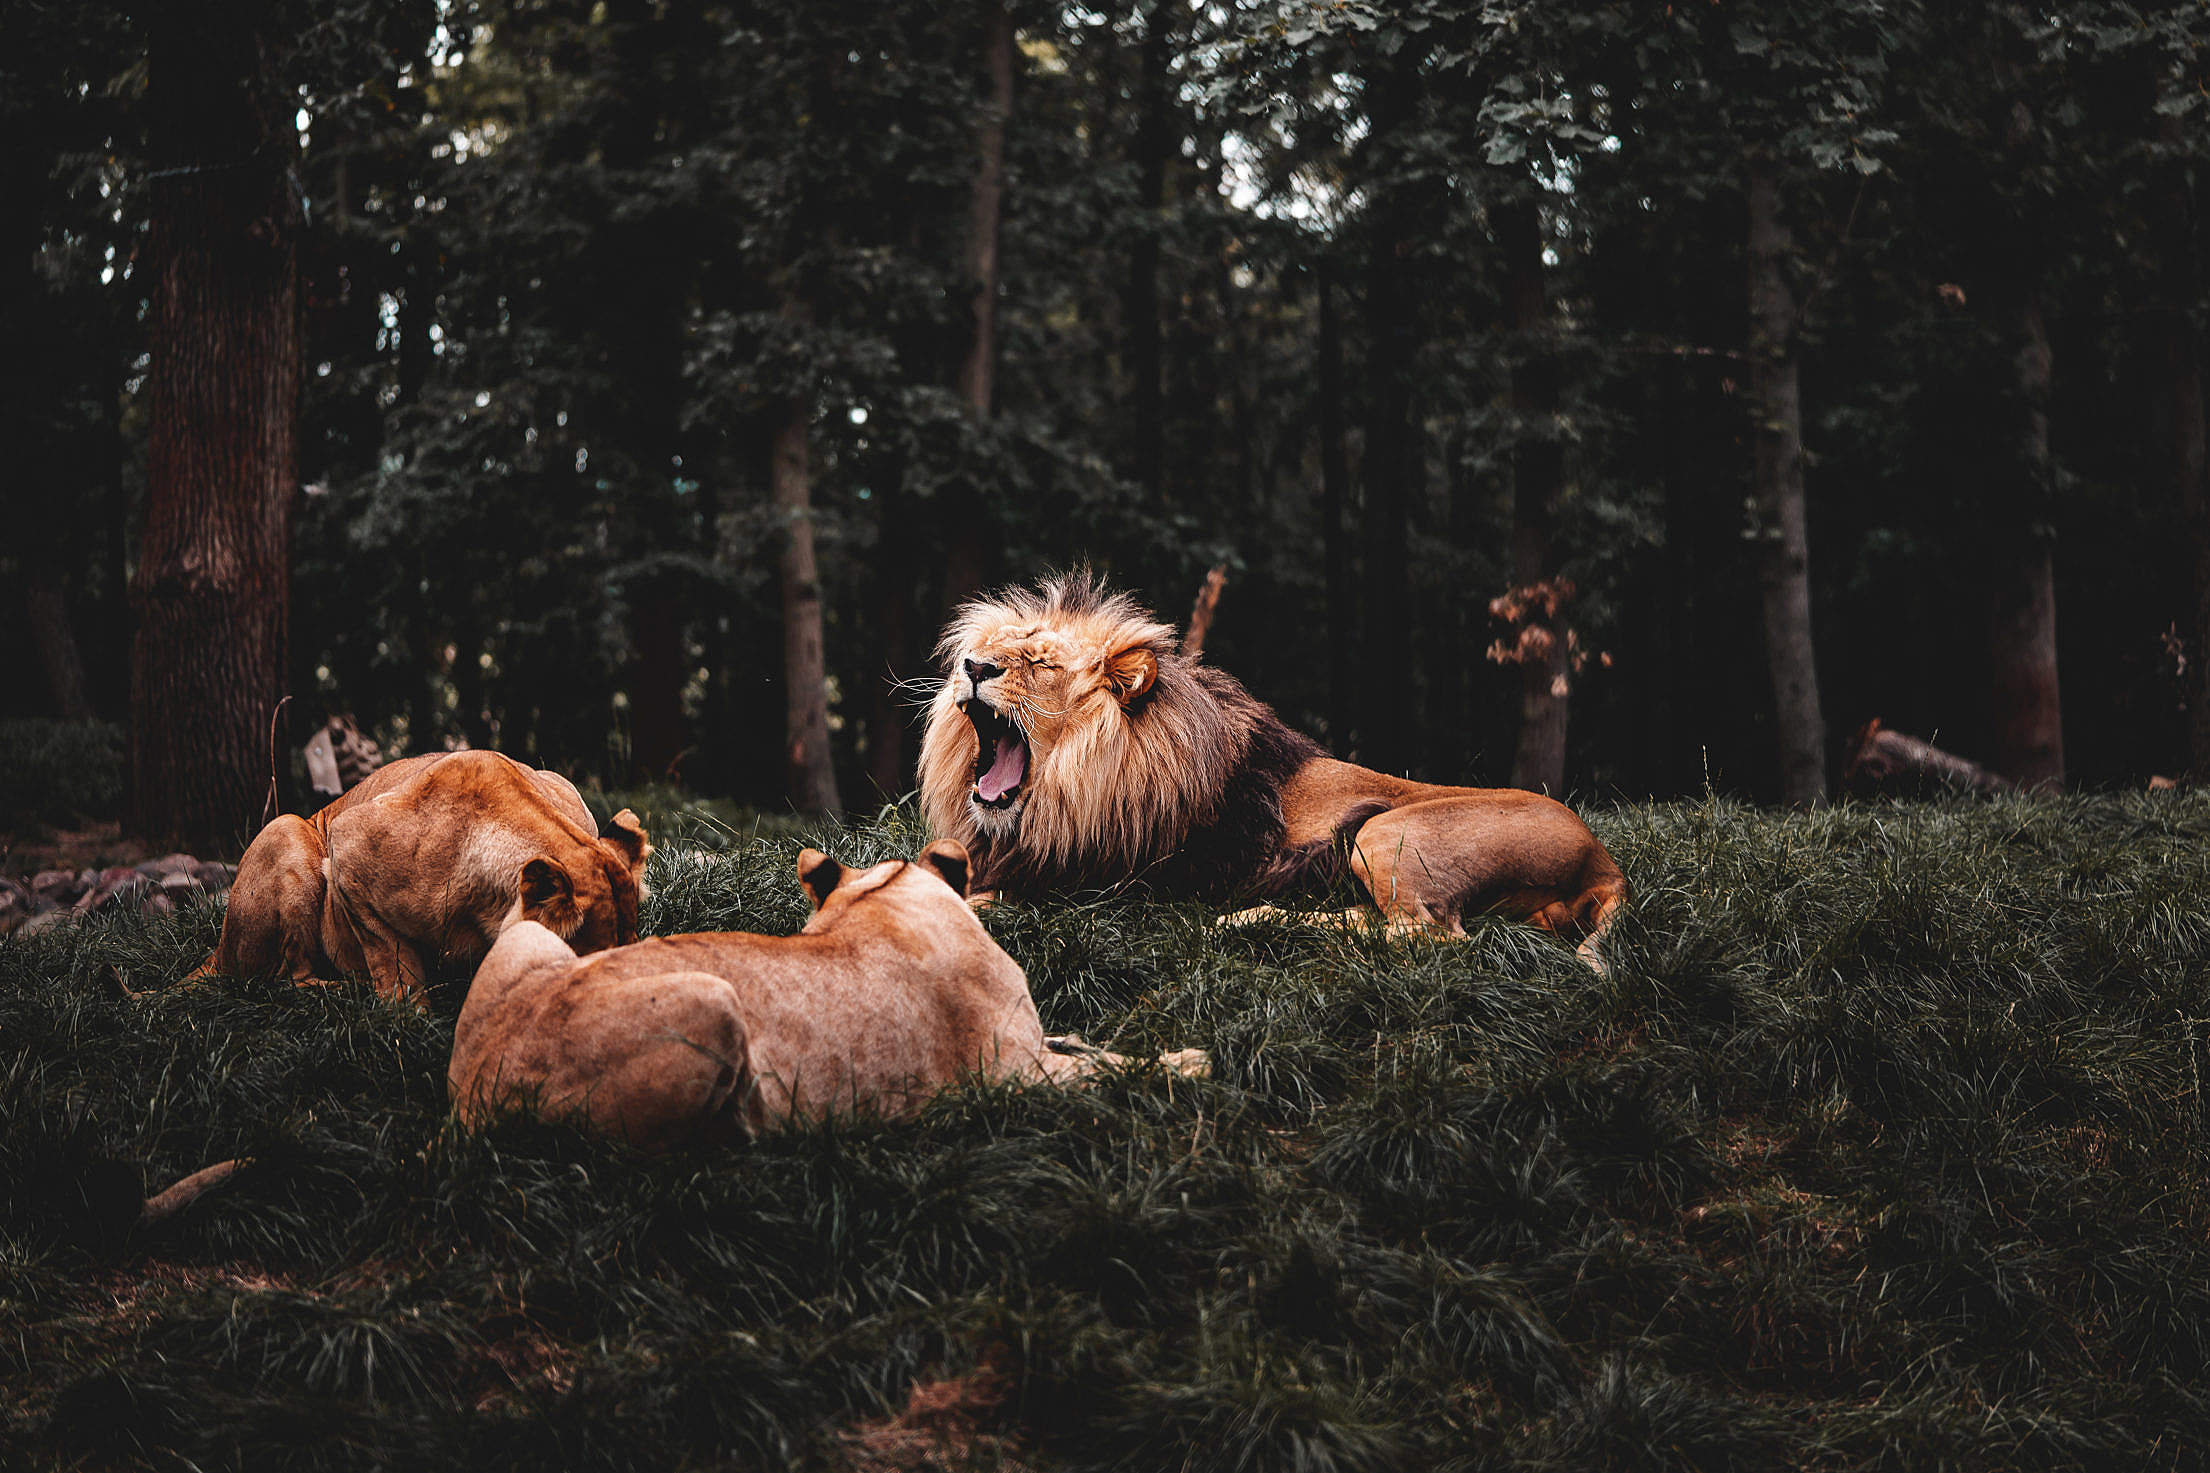 Roaring Lion and Two Lionesses Free Stock Photo